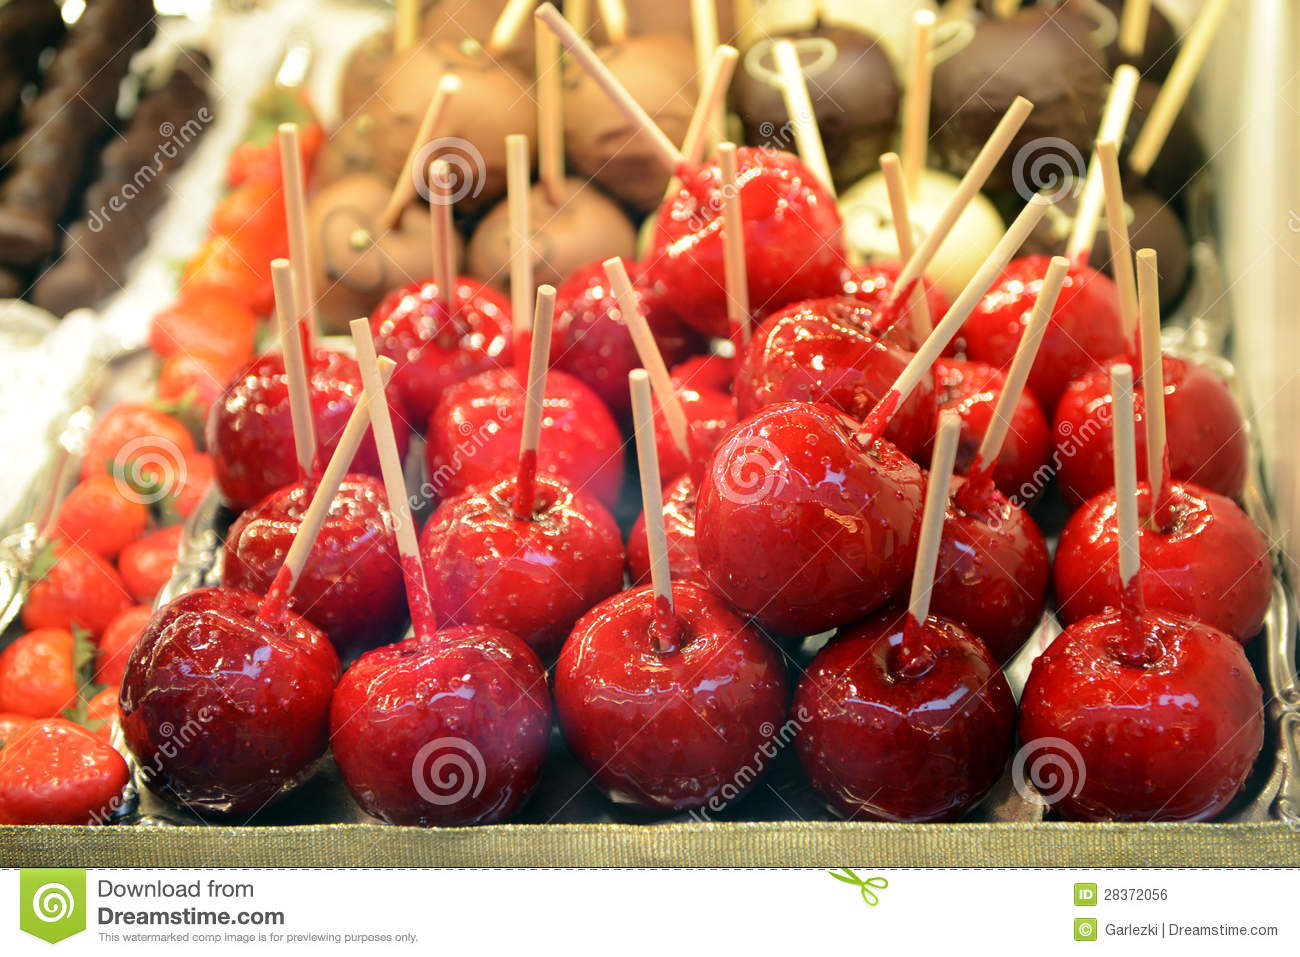 download candy apples at christmas market stock photo image of decorations foodstuff 28372056 - Christmas Candy Apples